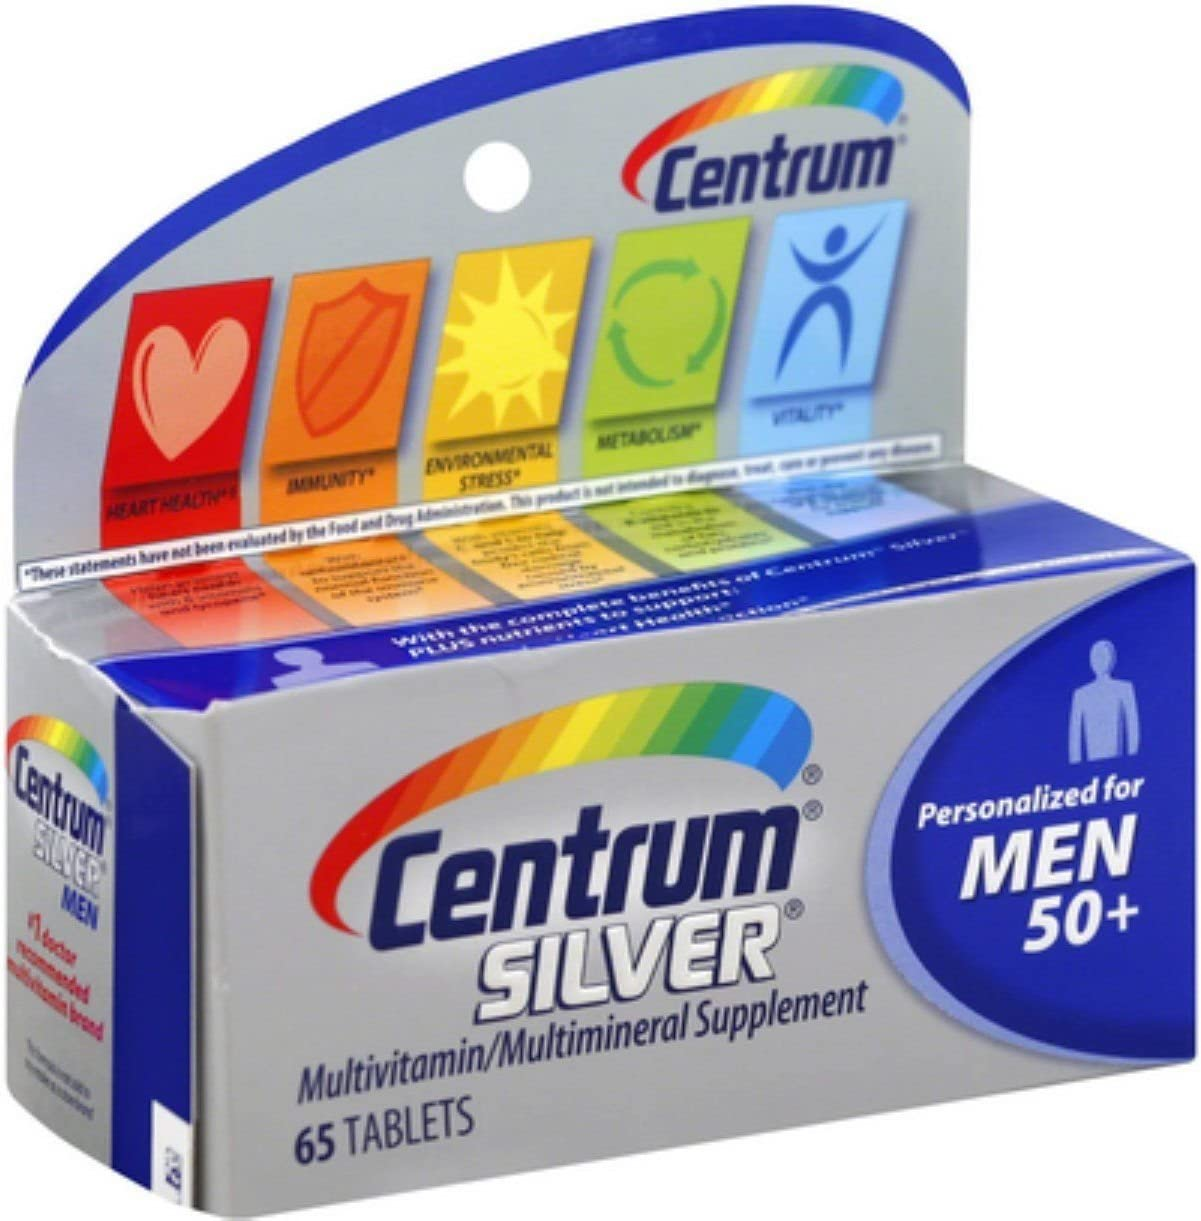 Centrum Silver Men 50 Multivitamin Tablets 65 ea Pack of 5